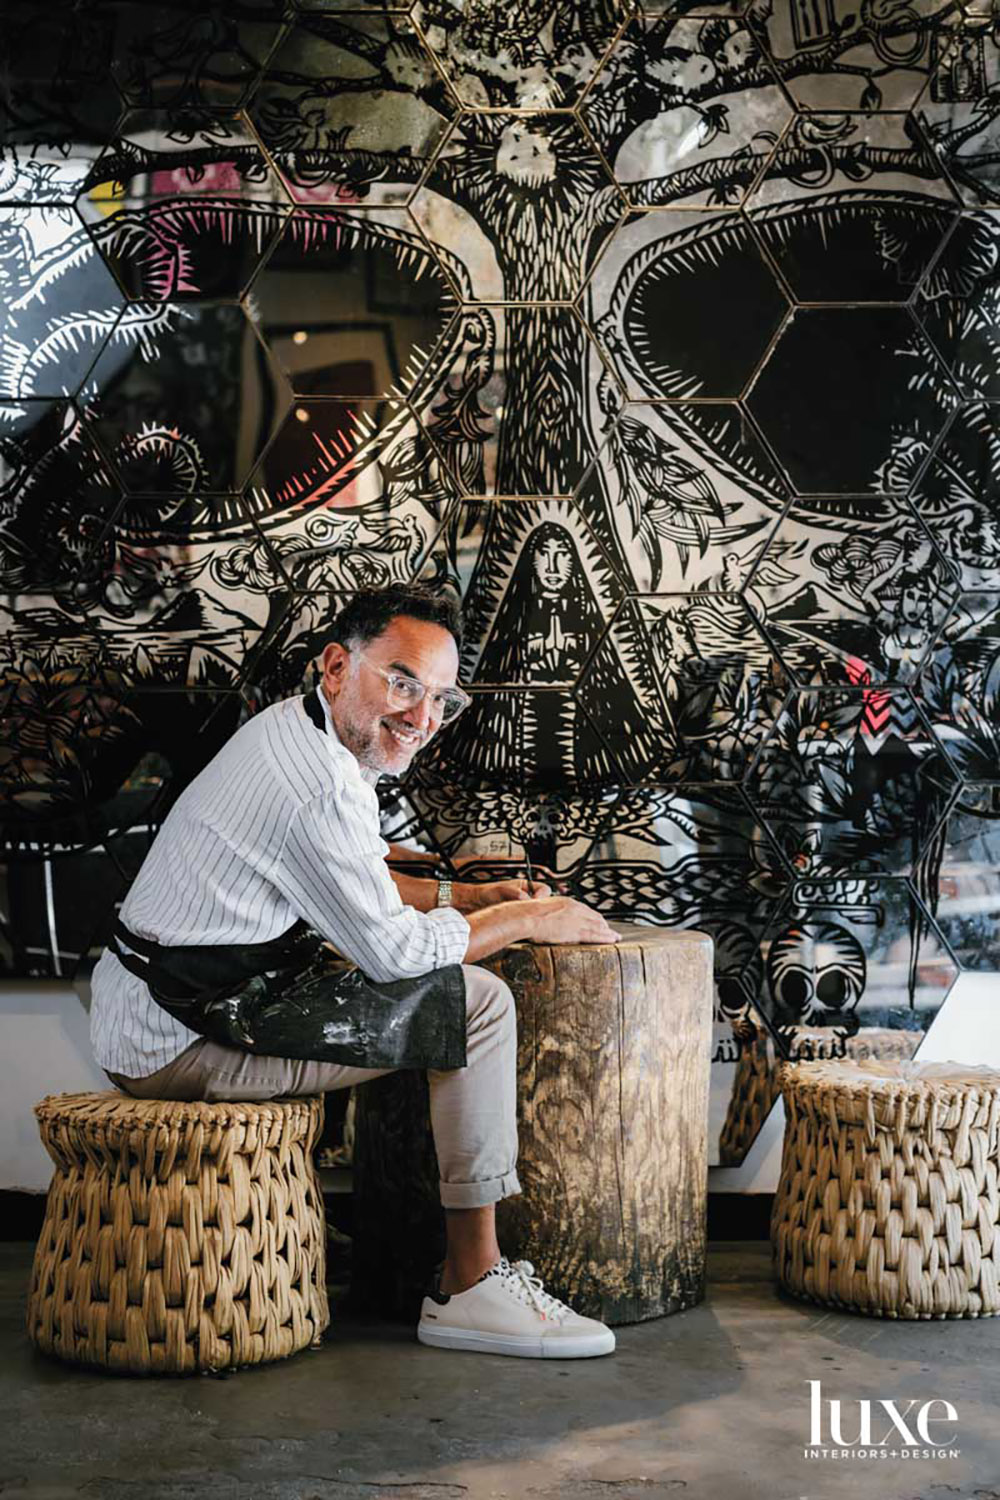 A man sitting on a stool smiling at the camera. Behind him is artwork.